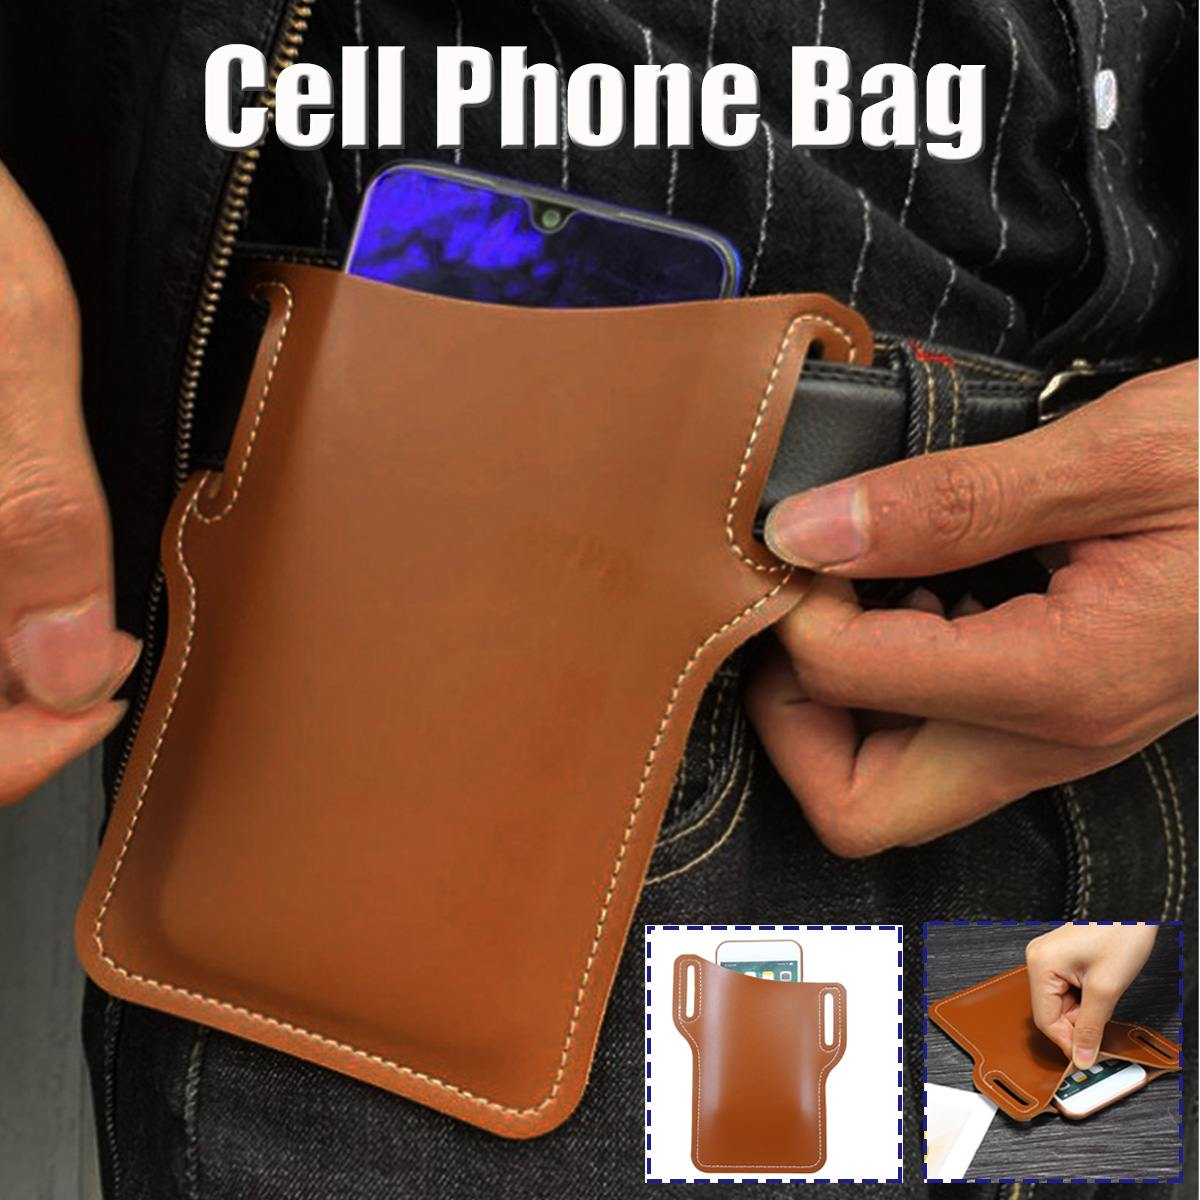 Fashion Leather Phone Case For IPhone 8 8P X XS Waist Belt Bag Small Purse Phone Key Bag Vintage Phone Pocket Cases